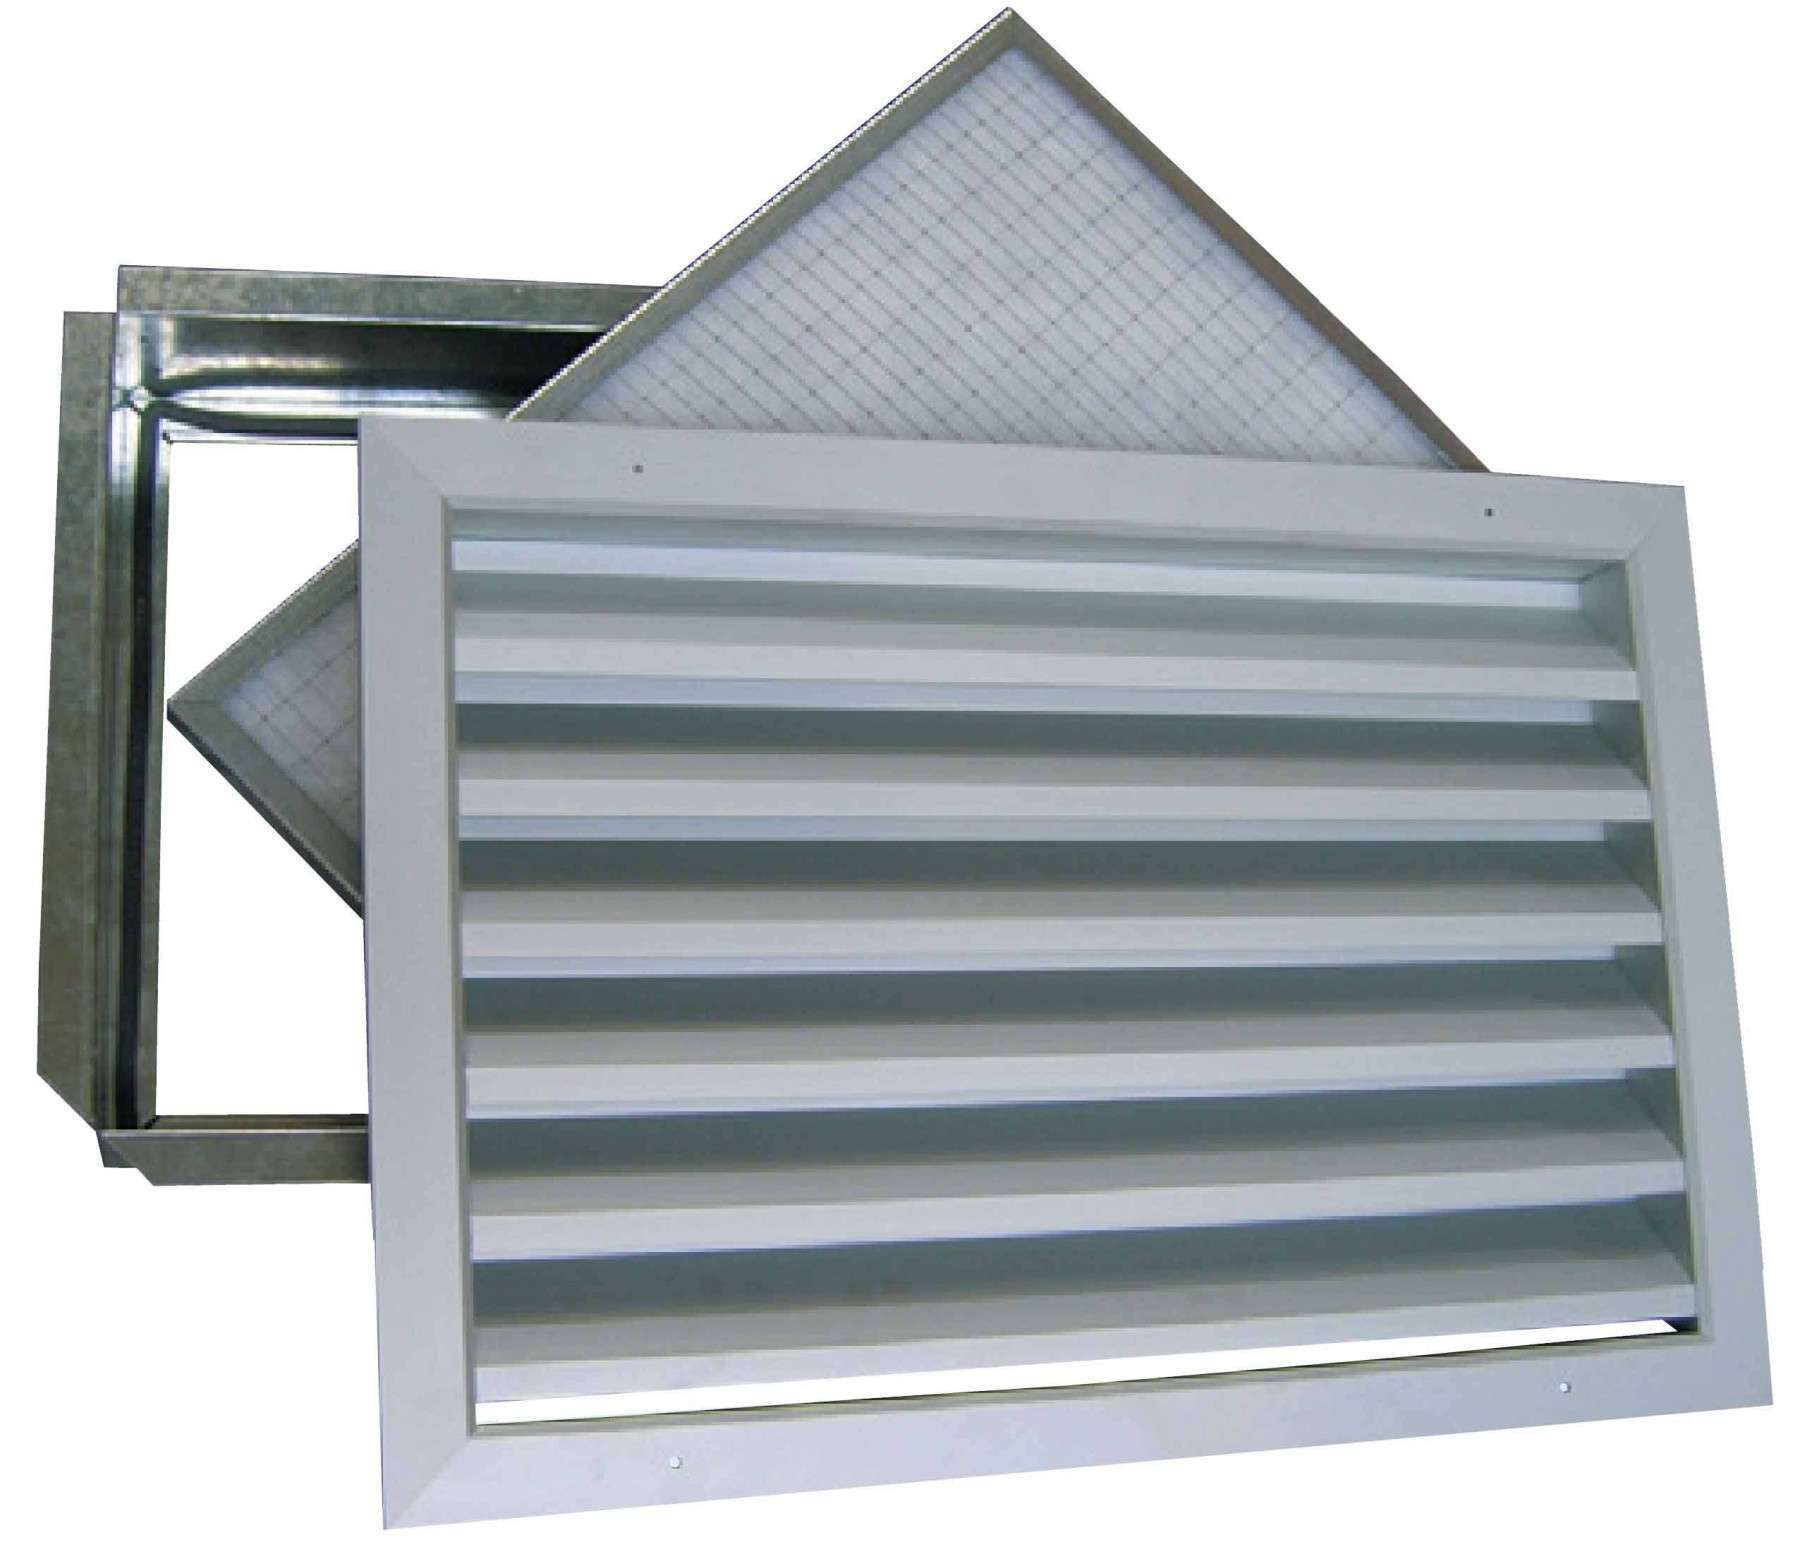 GRE/FP 600X600/50 UNELVENT GRILLE SIMPLE DEFLECTION 875485